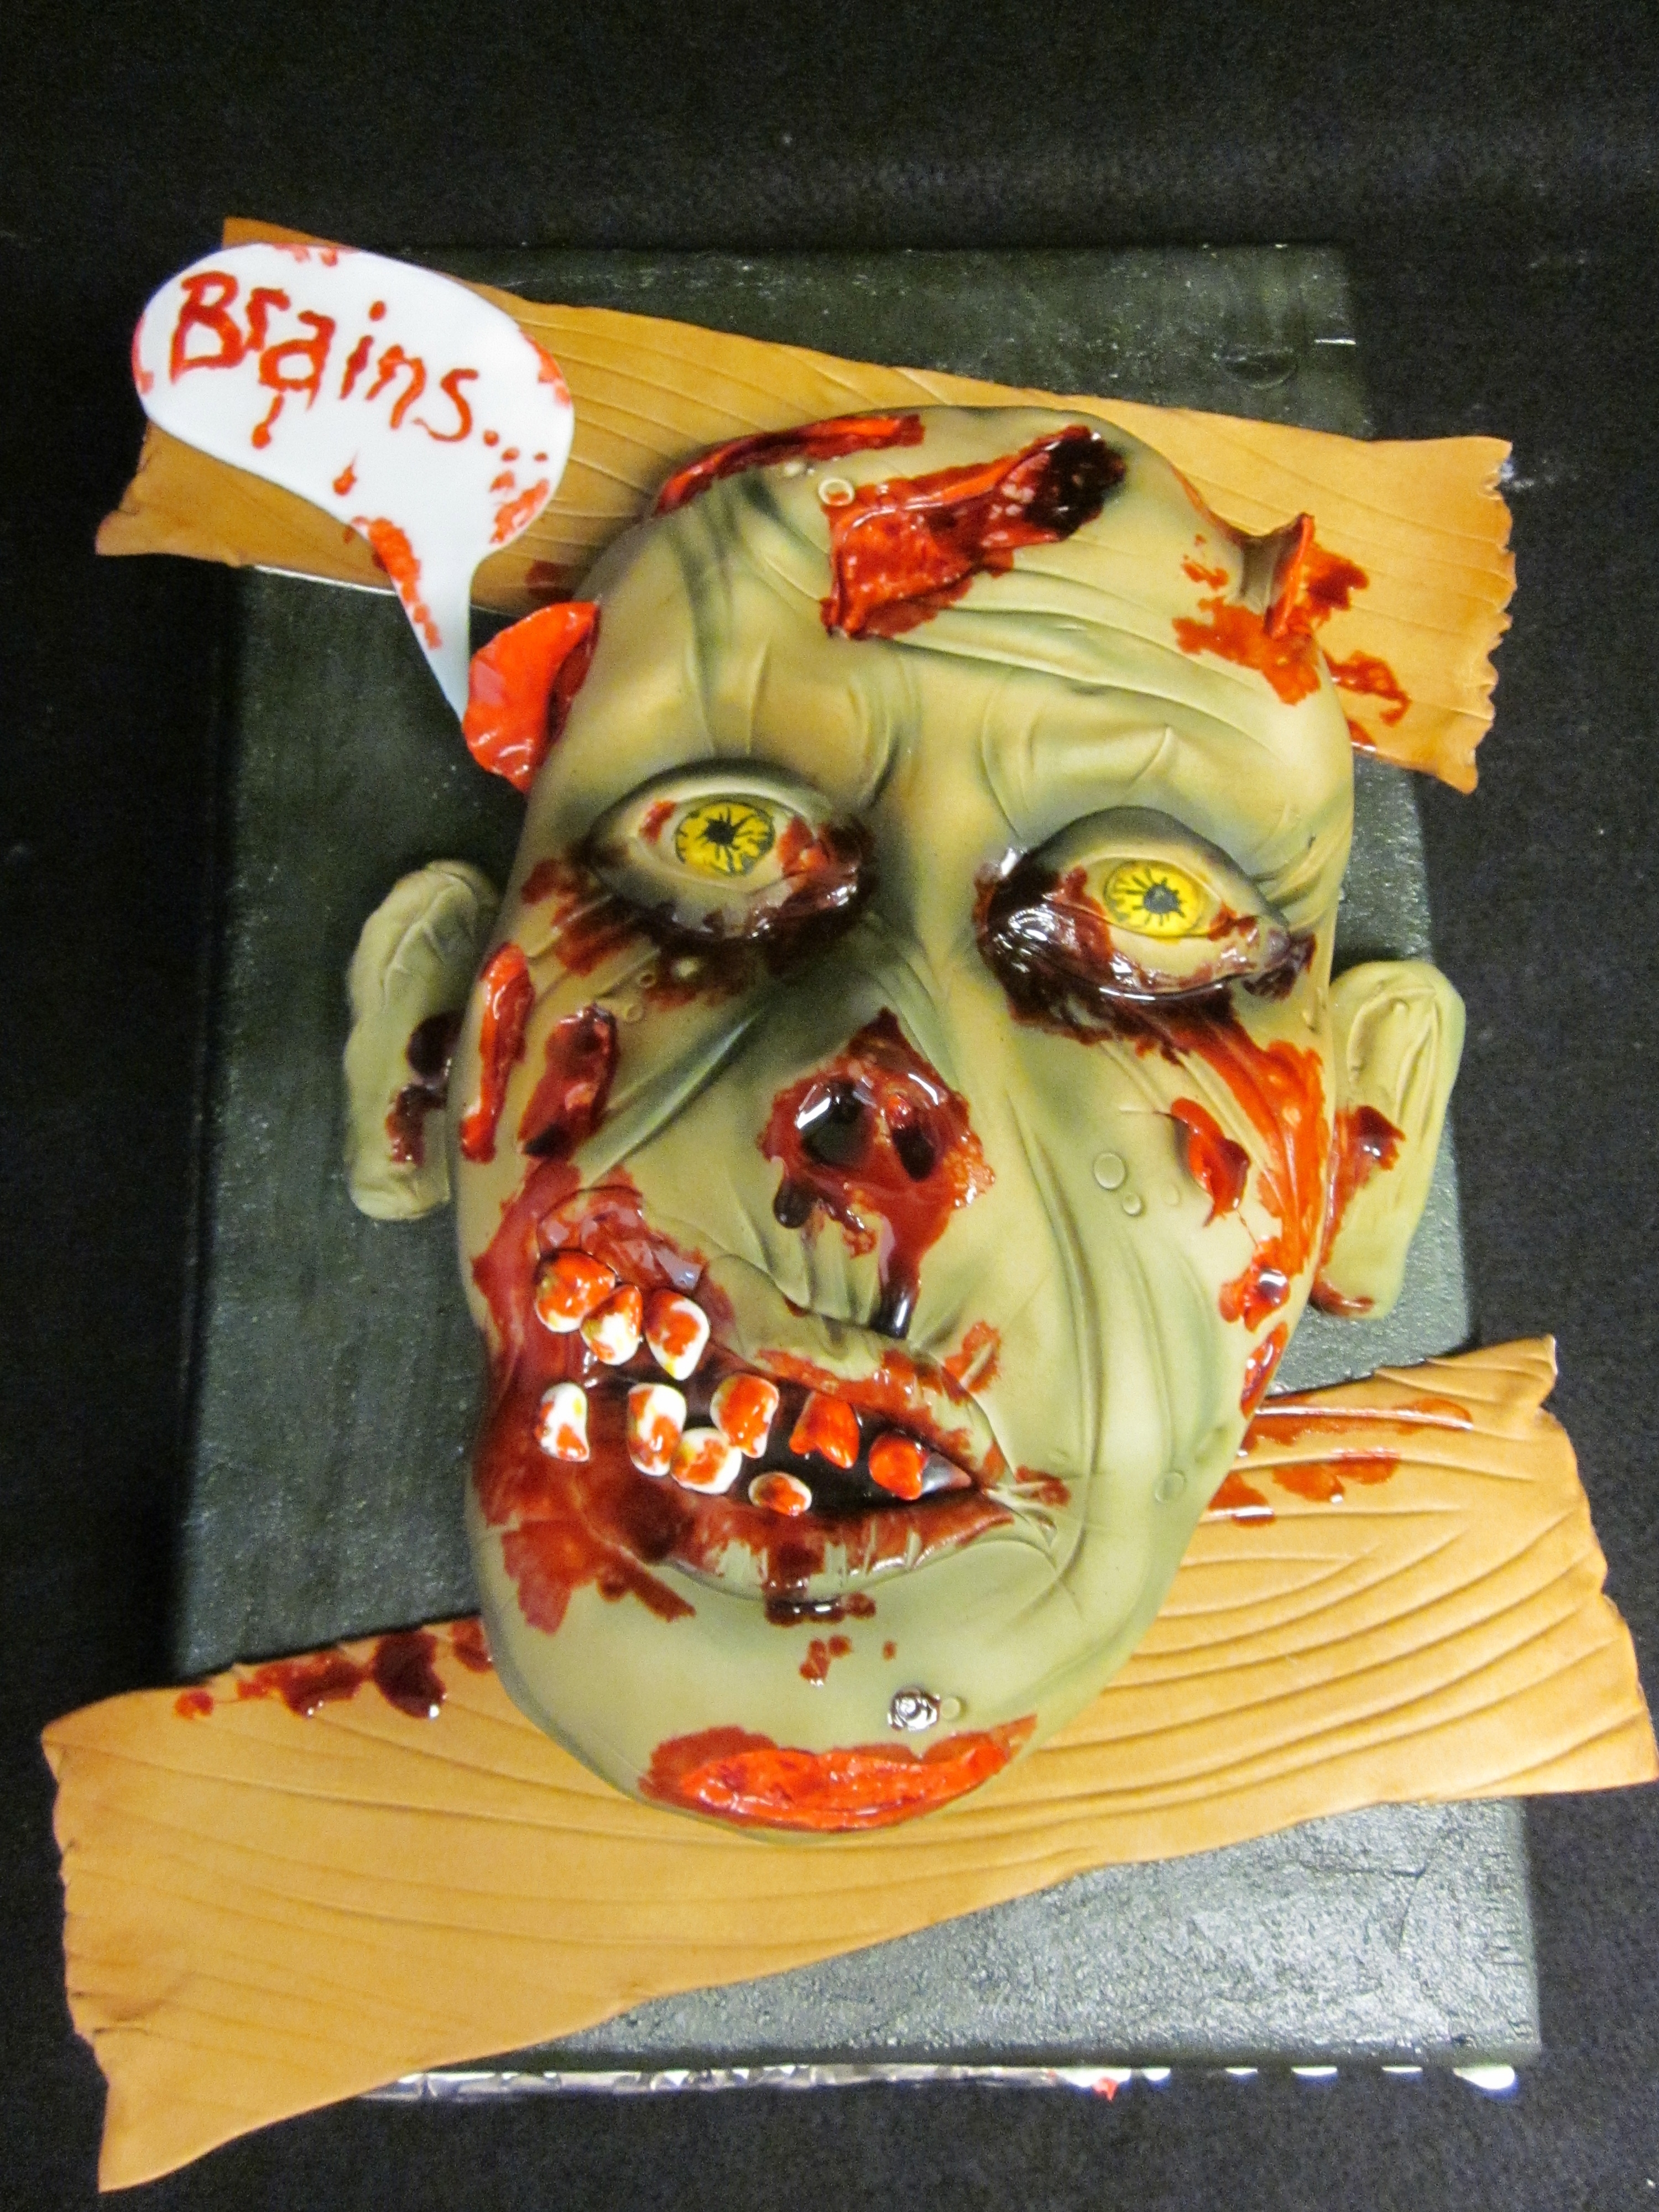 Zombie face coming out of a sheet cake, lookin for some brains! Face moulded with RKT and fondant....strawberry flavored edible blood! Yum!